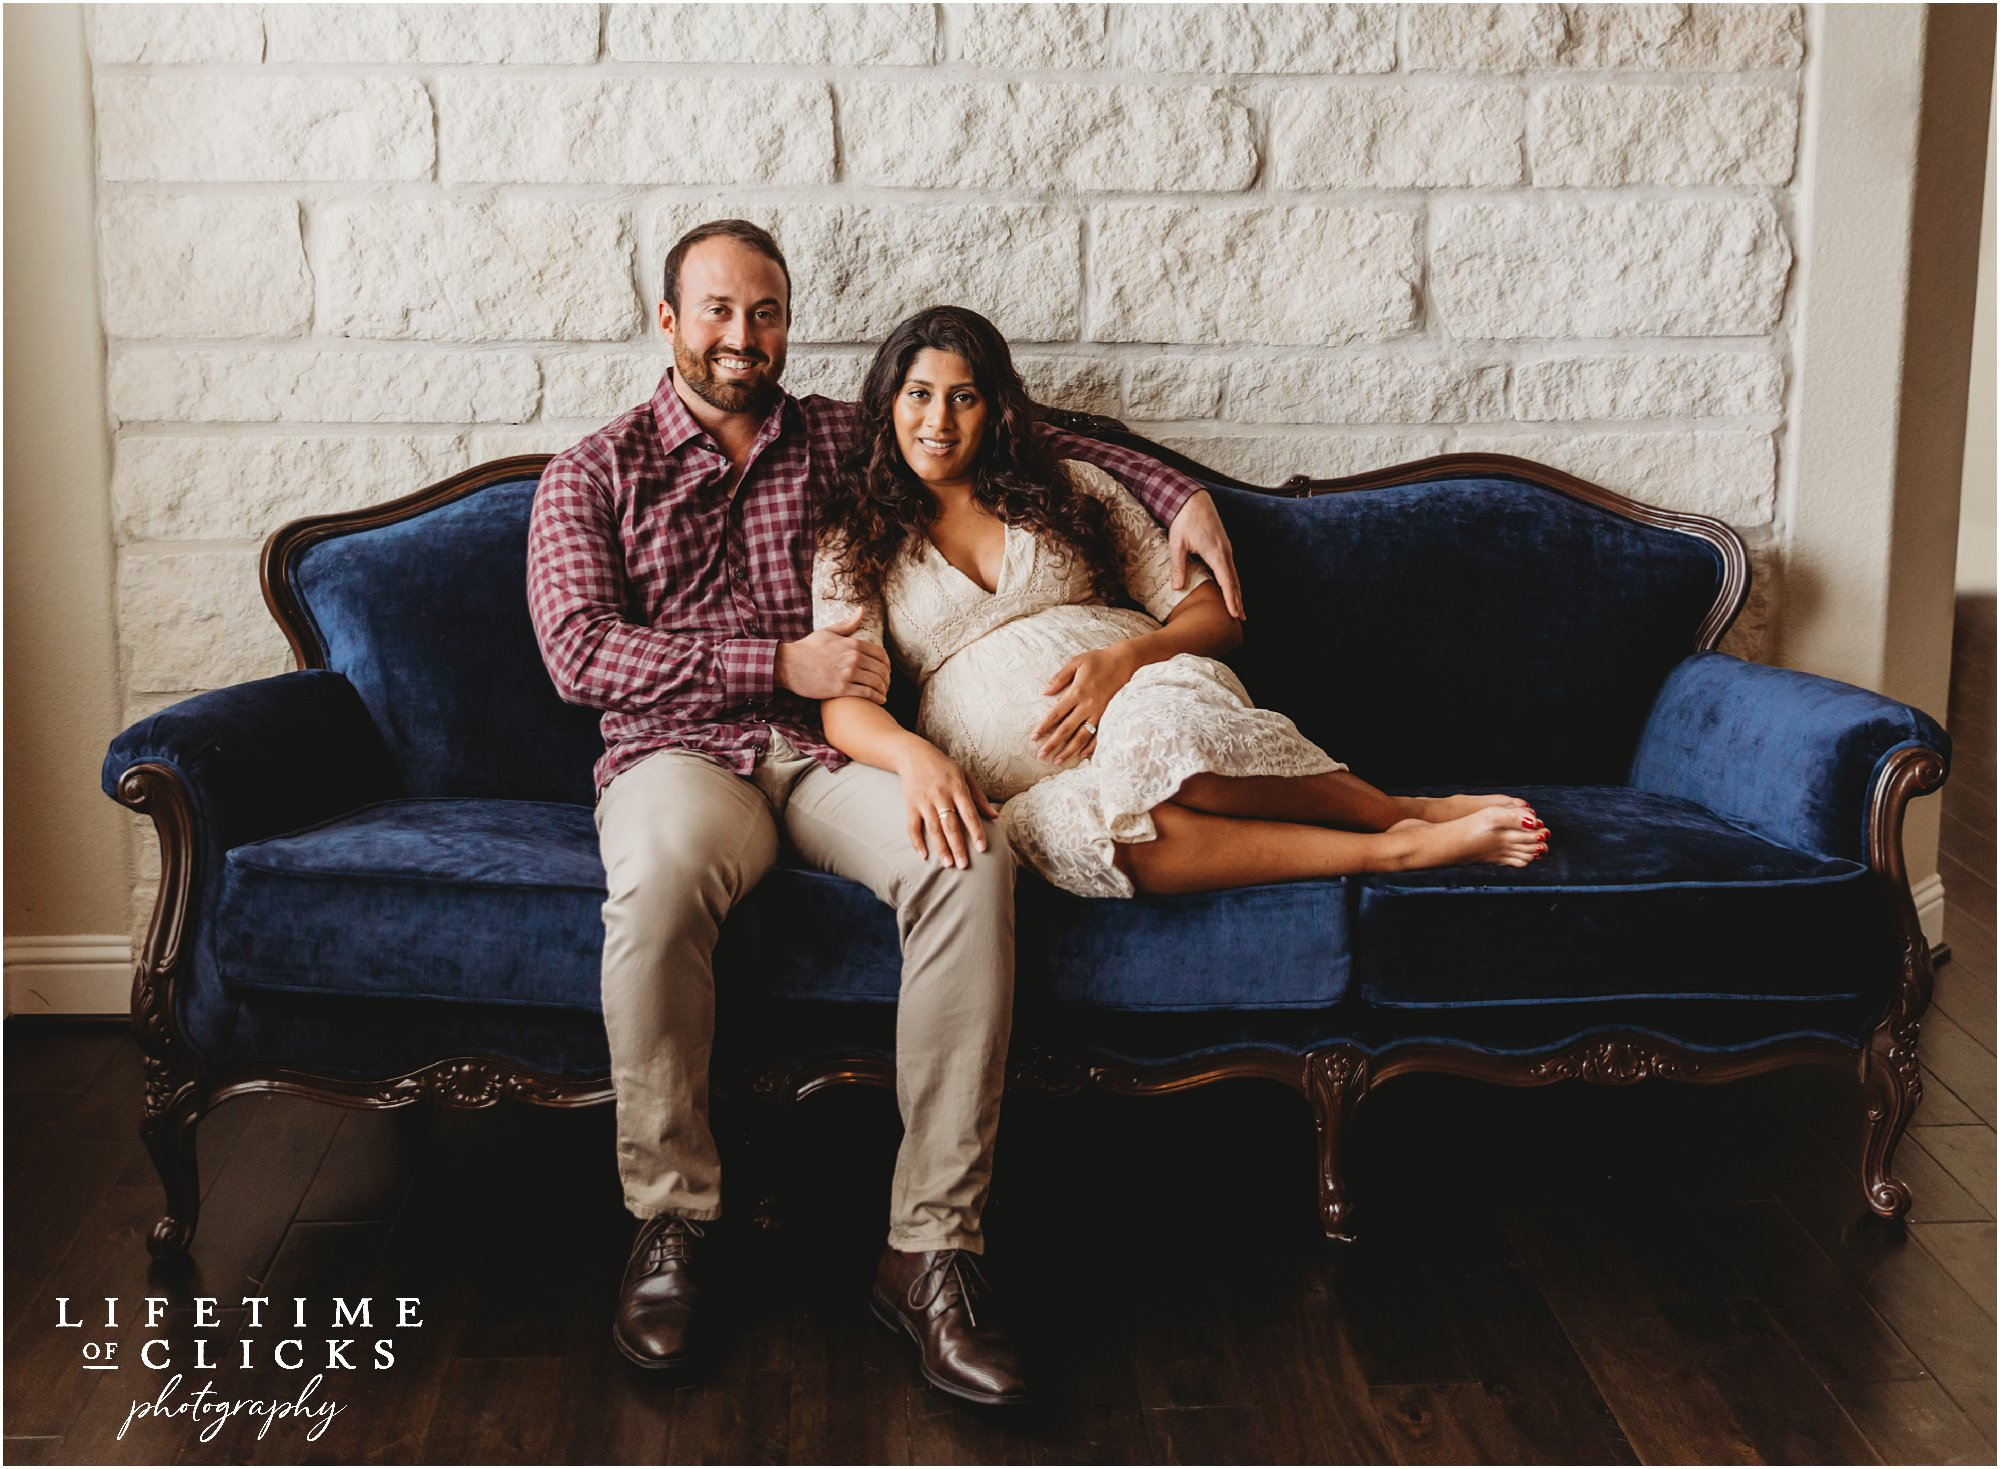 Lifestyle maternity photos in Katy TX